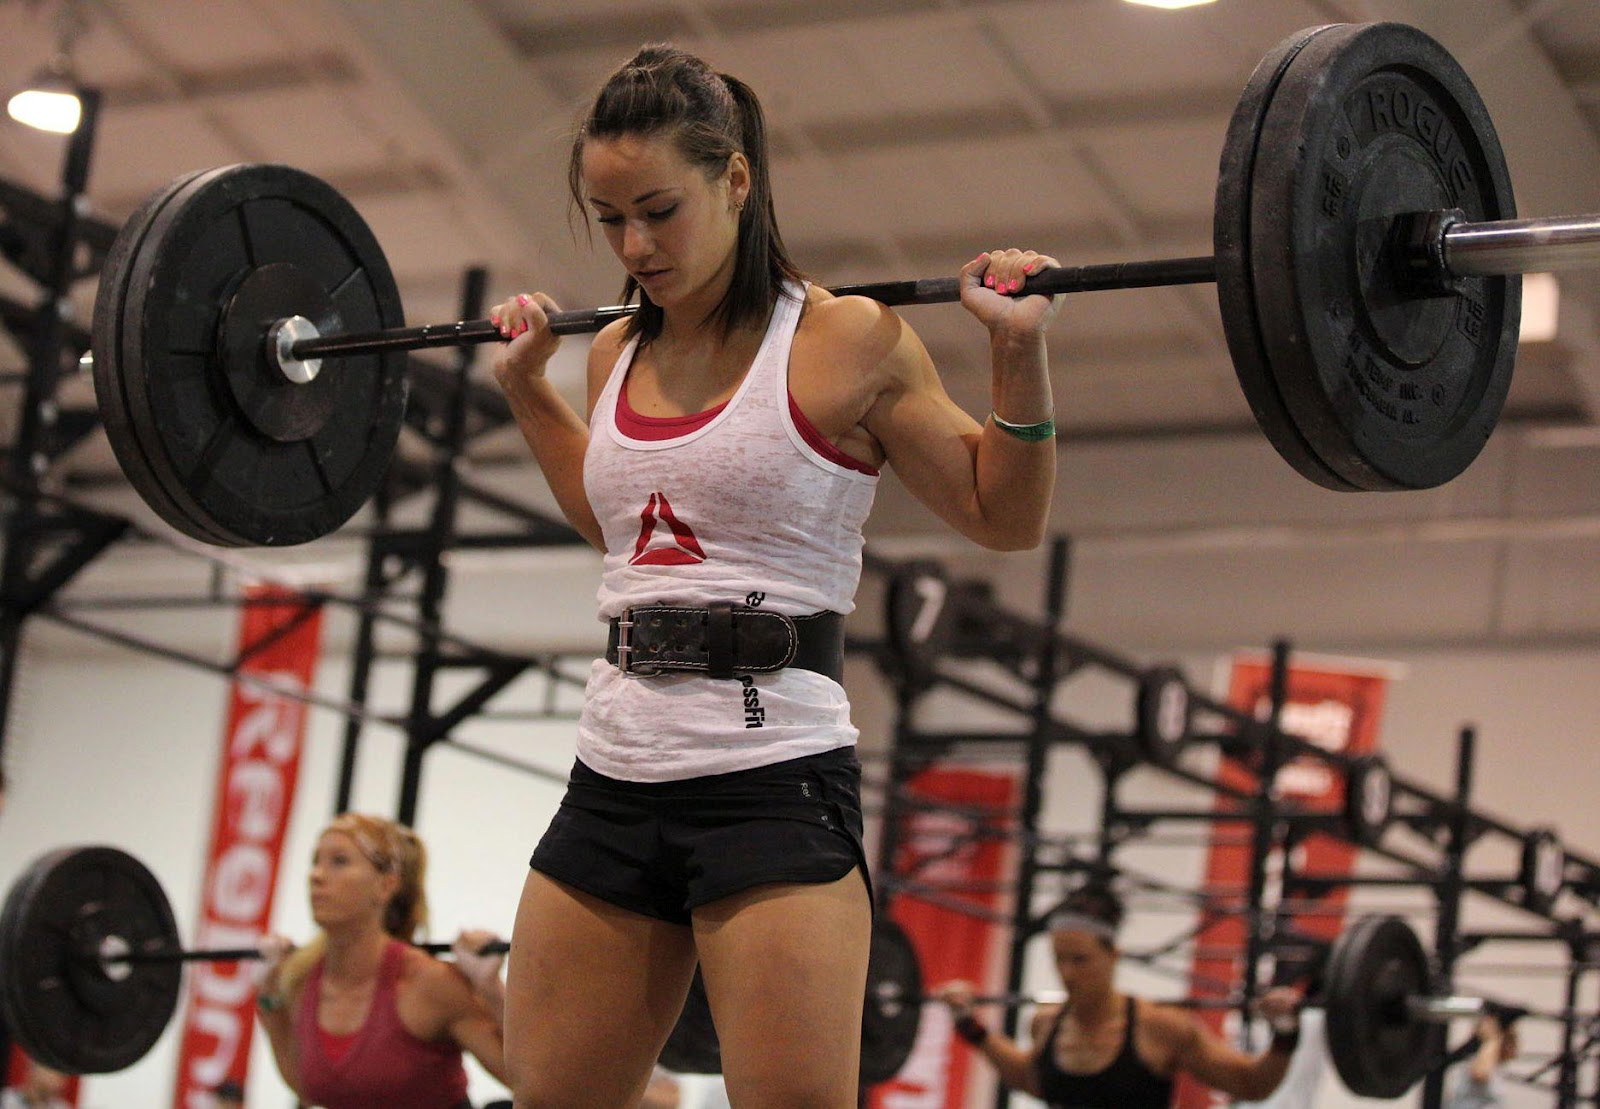 Camille Leblanc-Bazinet and the Barbell